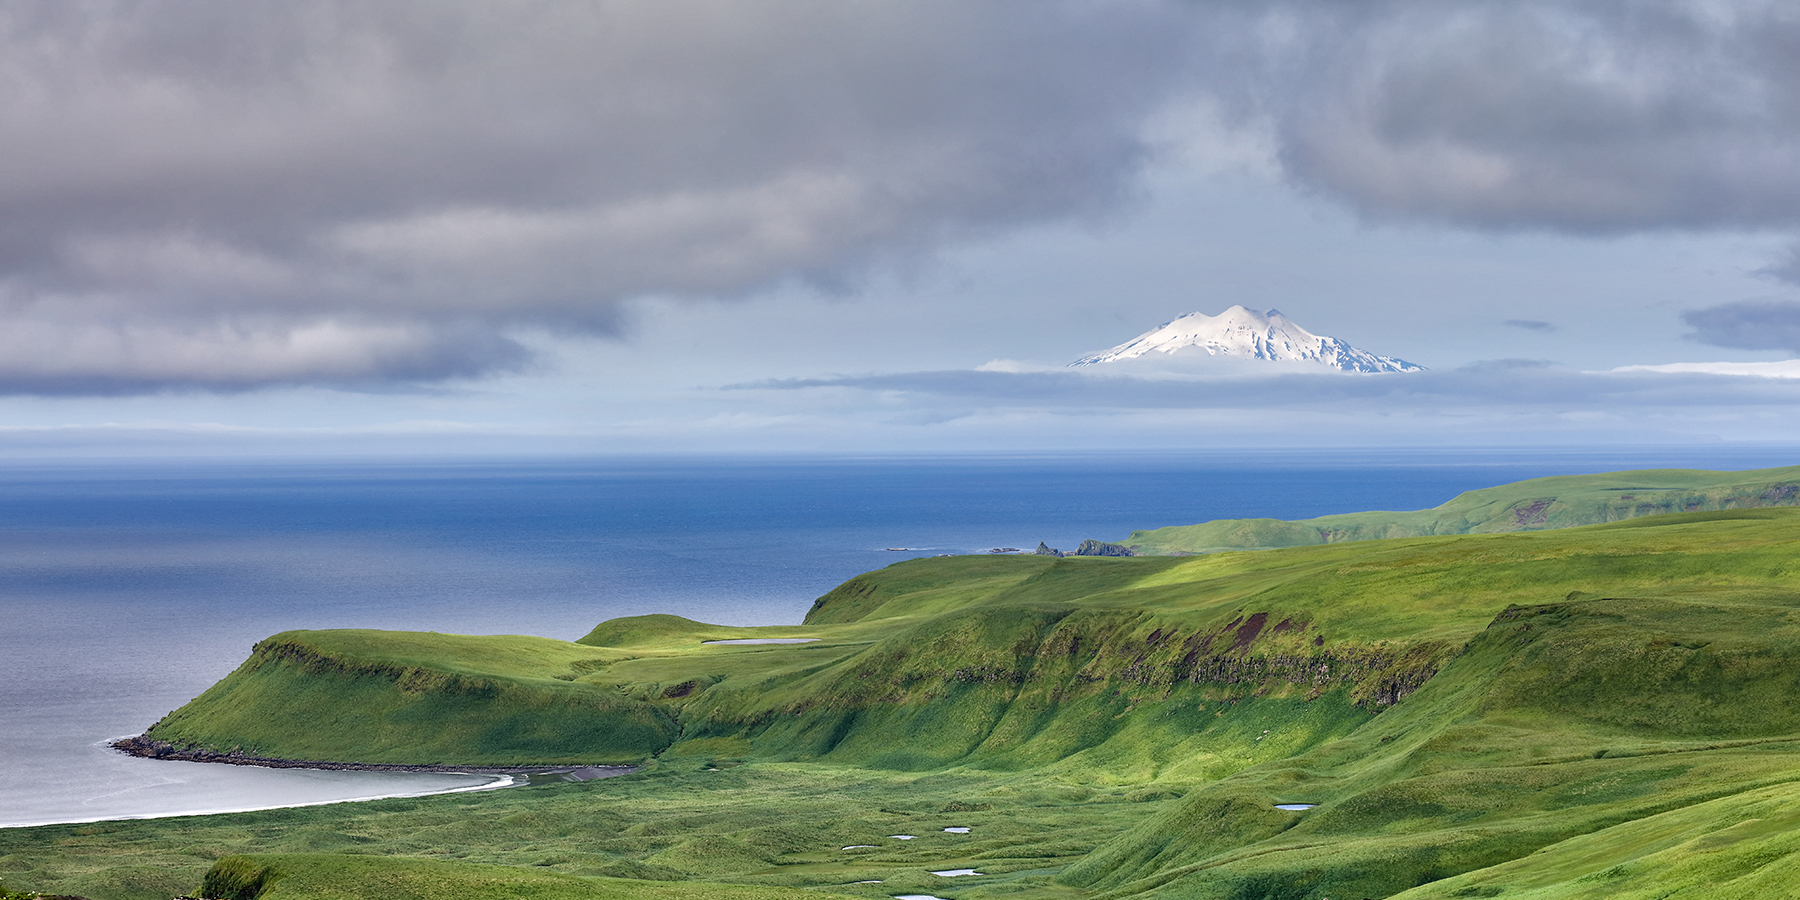 Gareloi Island and its massive volcano loom across the Bering Sea from Tanaga Island in the Aleutians. Photo by Eric DeChaine.